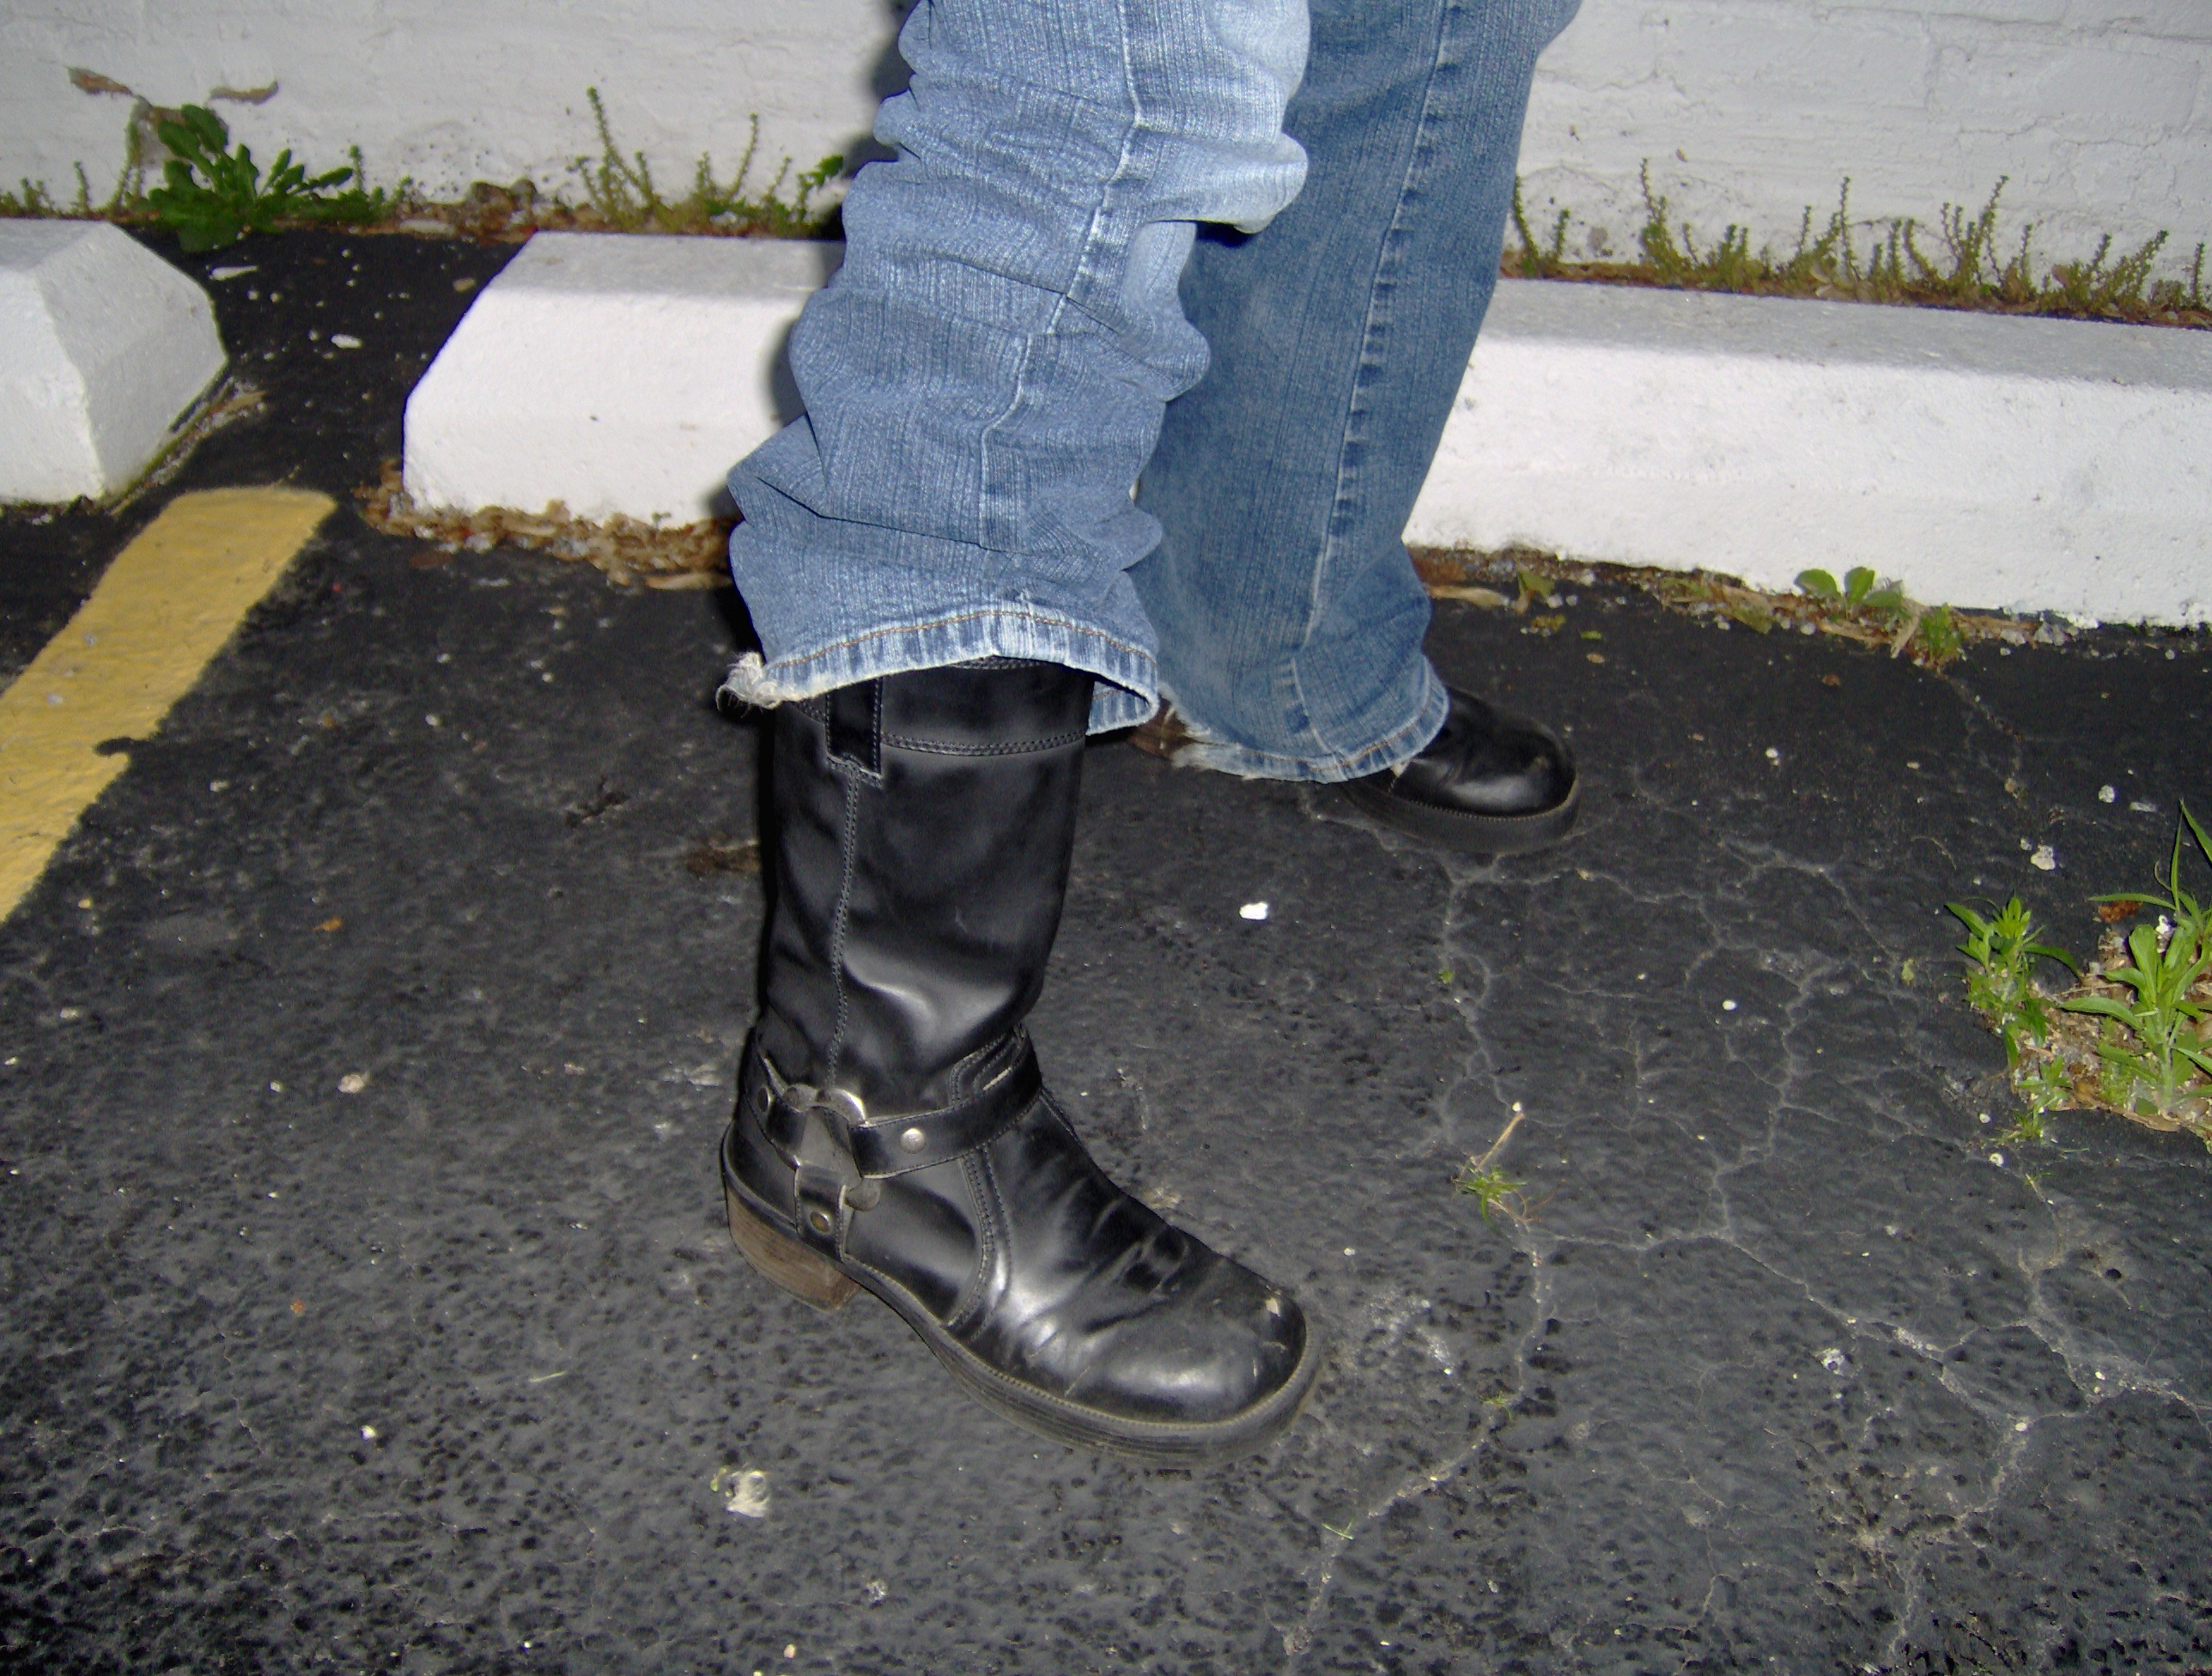 The ankle is a vulnerable bone, covered only by a layer of skin. Ankle supporting boots lessen the risk of a shattered ankle should you take a spill. These are a size 7. Photo by Gene Kieca.